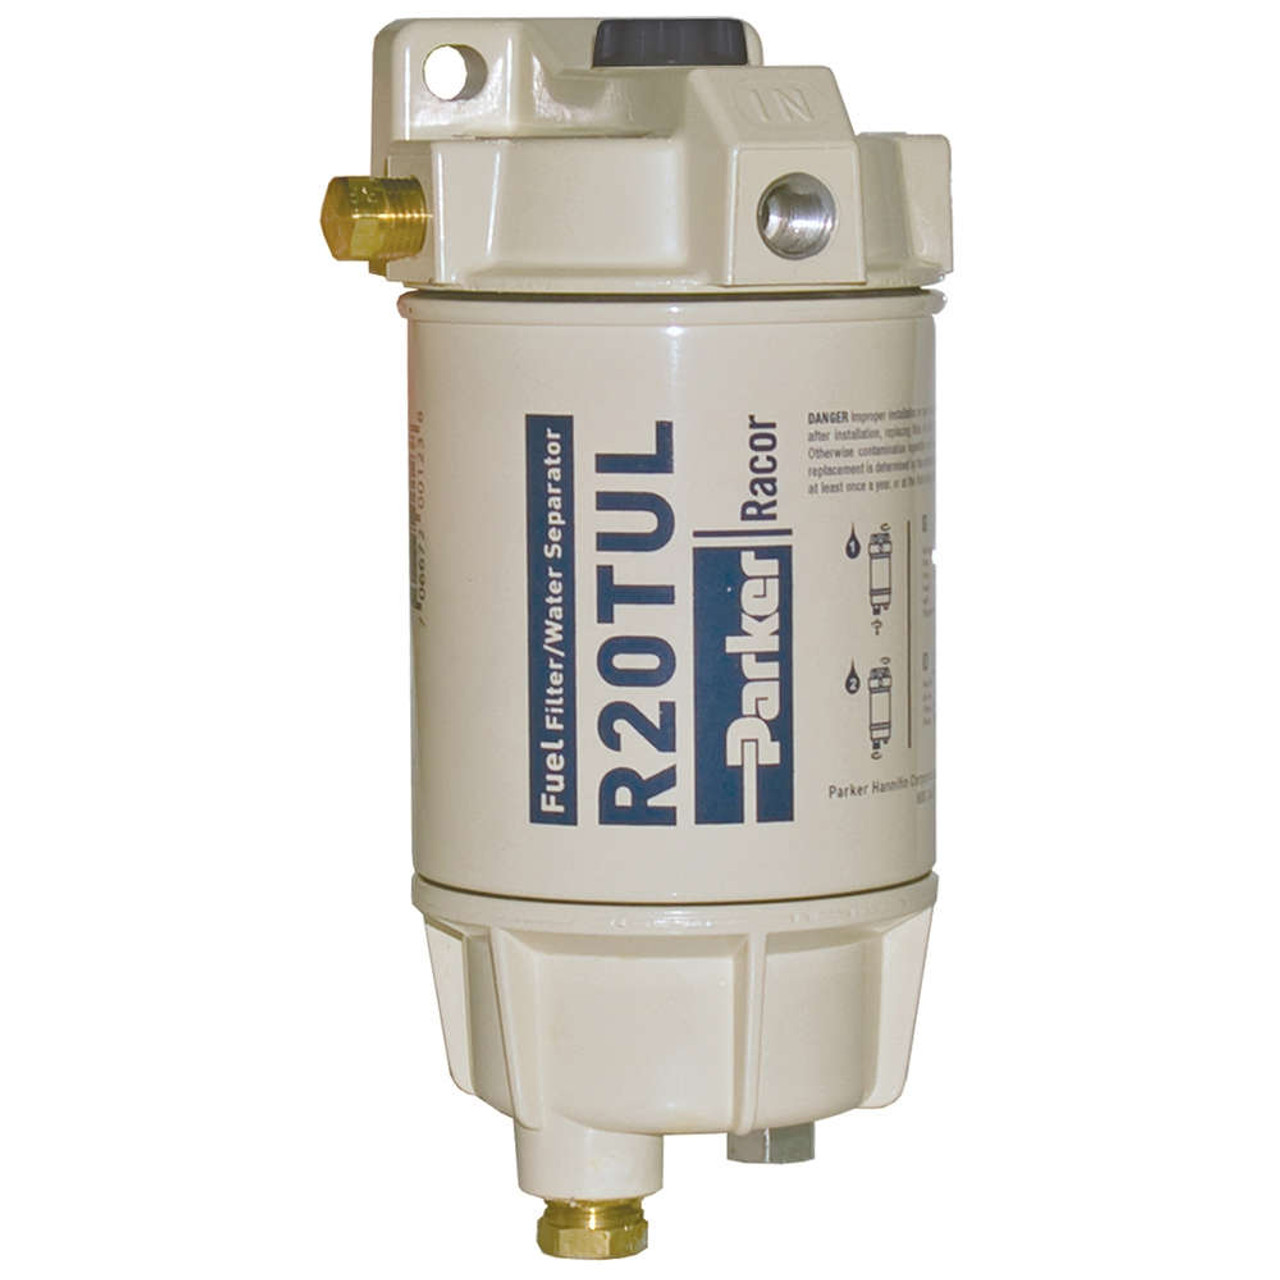 hight resolution of racor 1 4 in 30 gph aquabloc marine spin on type diesel fuel filterracor 1 4 in 30 gph aquabloc marine spin on type diesel fuel filter water separator